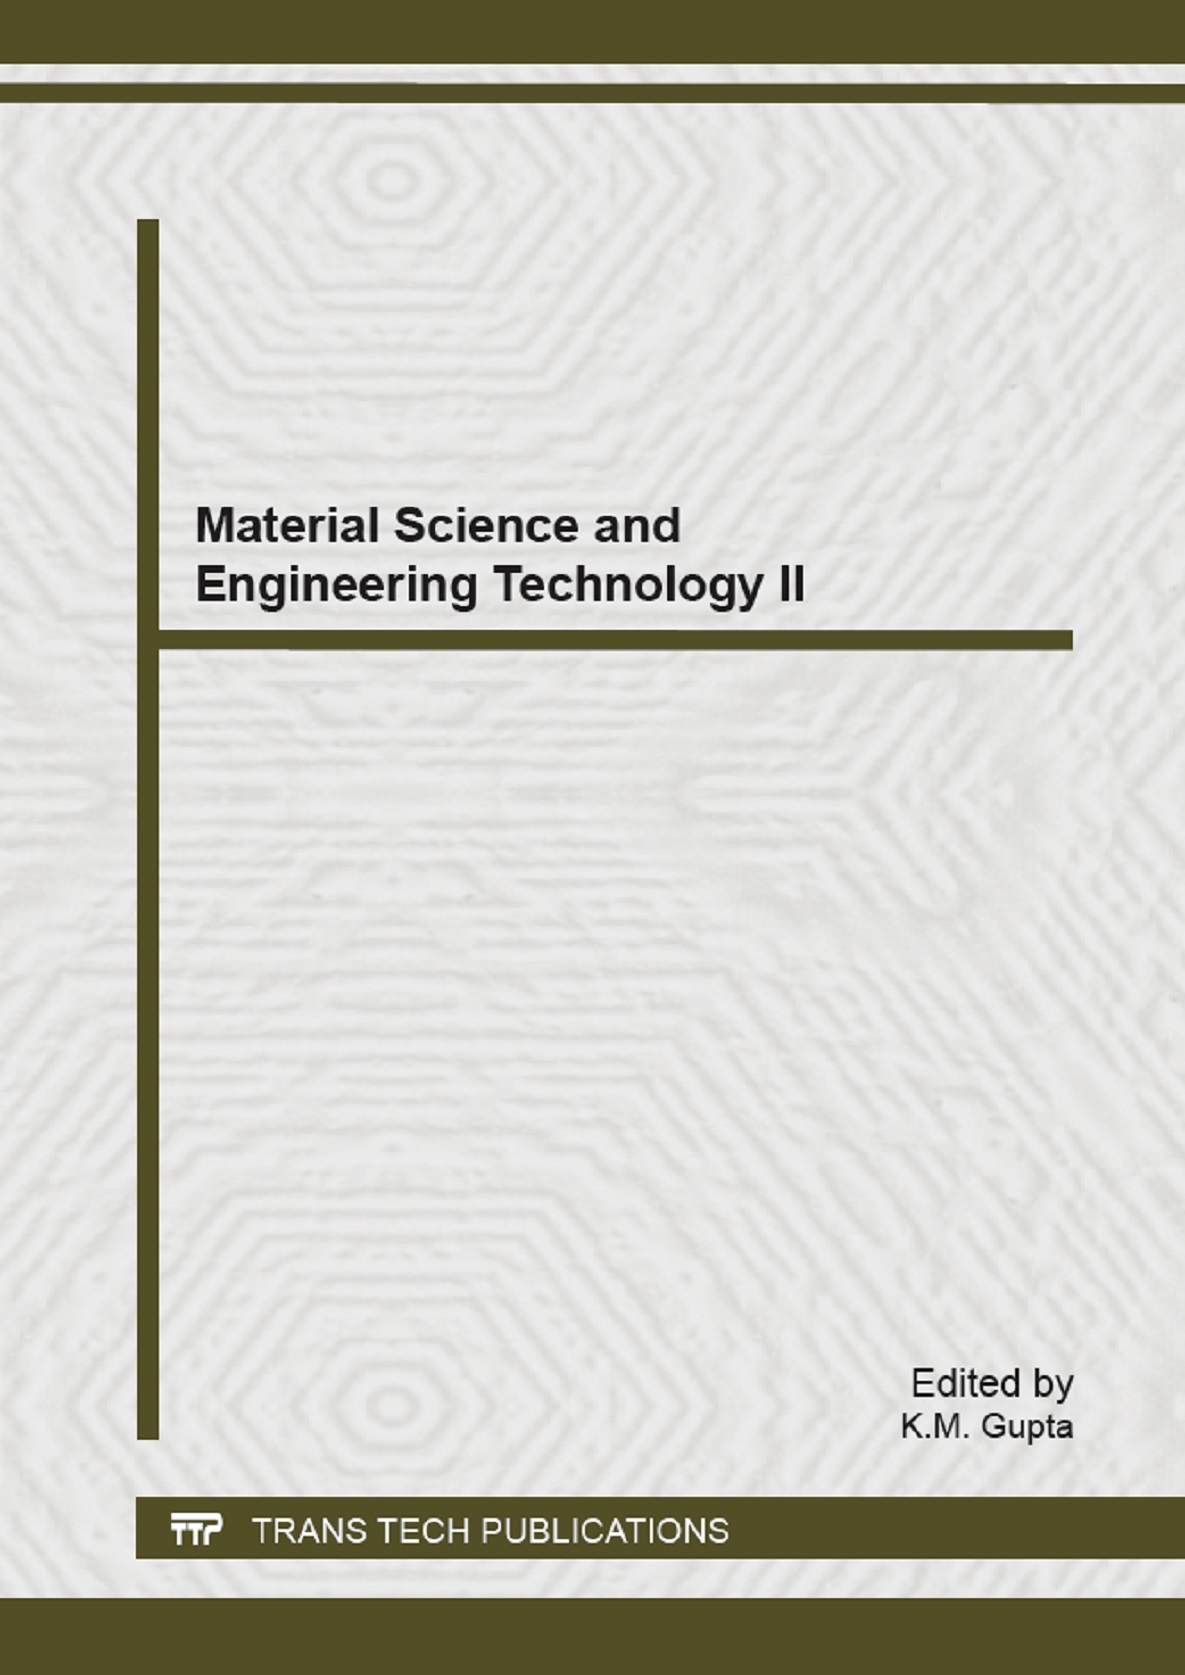 Material Science and Engineering Technology II